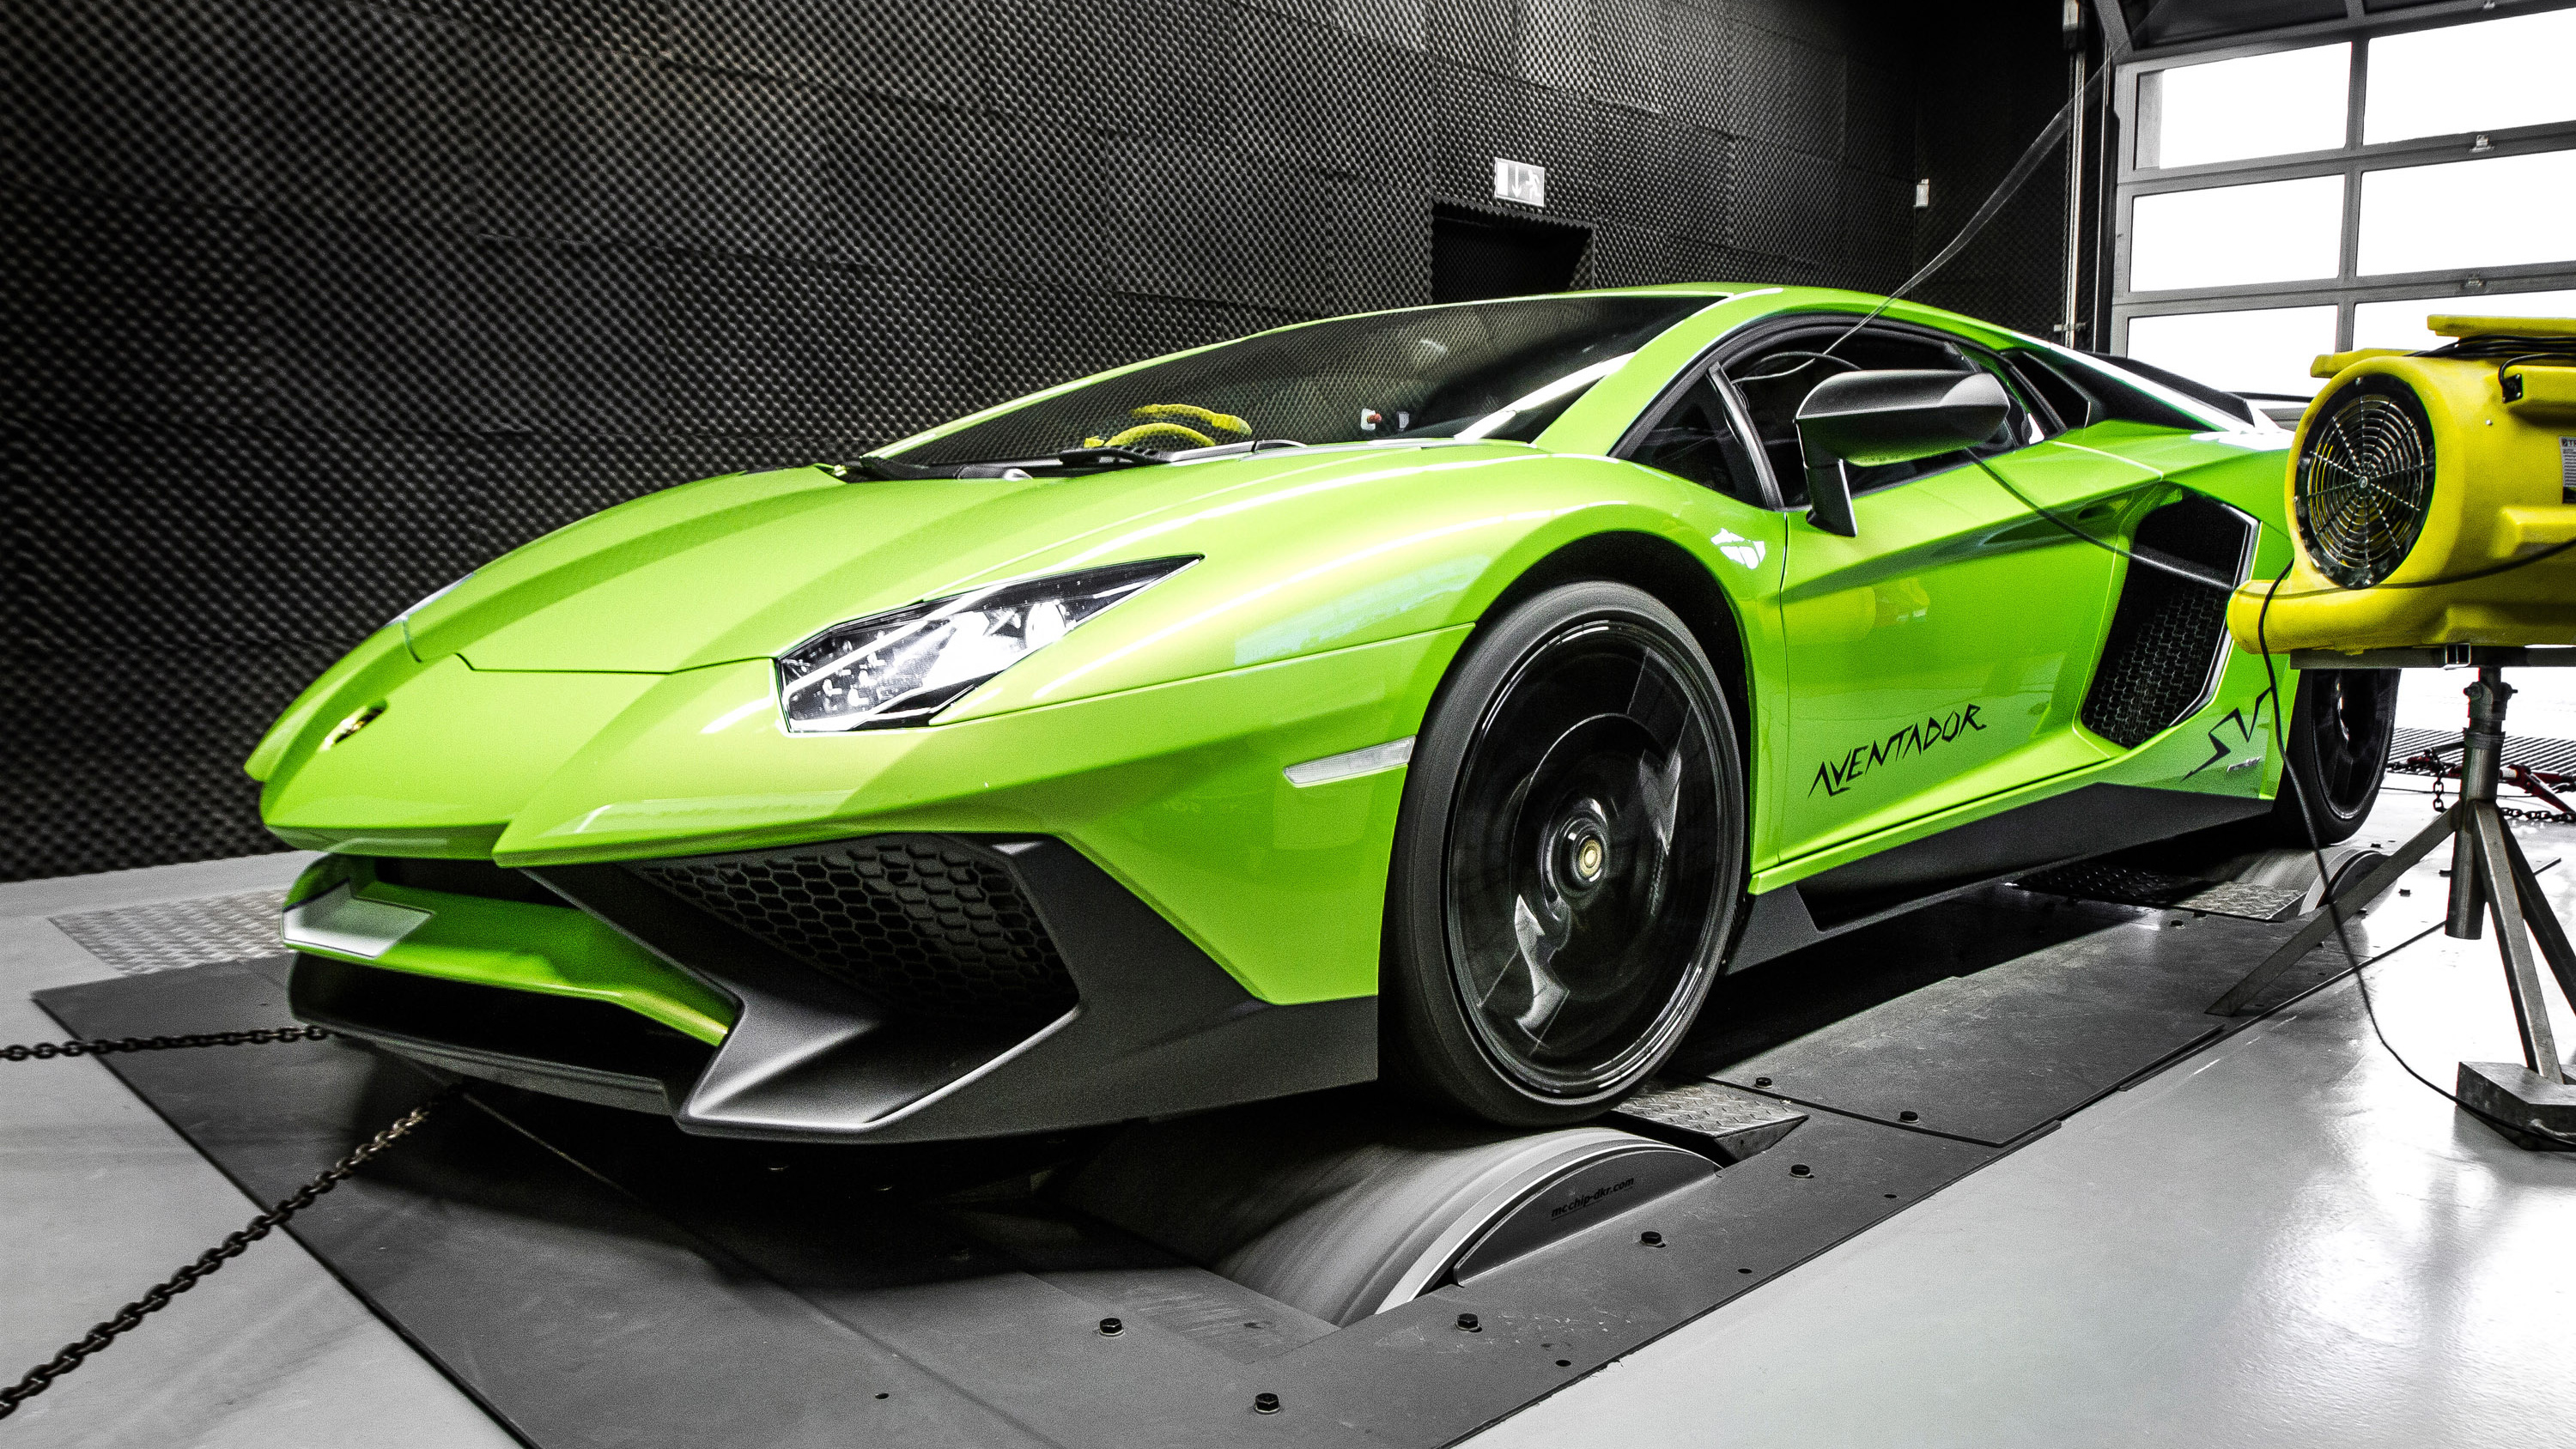 Tags Lamborghini Aventador Mcchip 2017 Description Download Dkr 2 Wallpaper